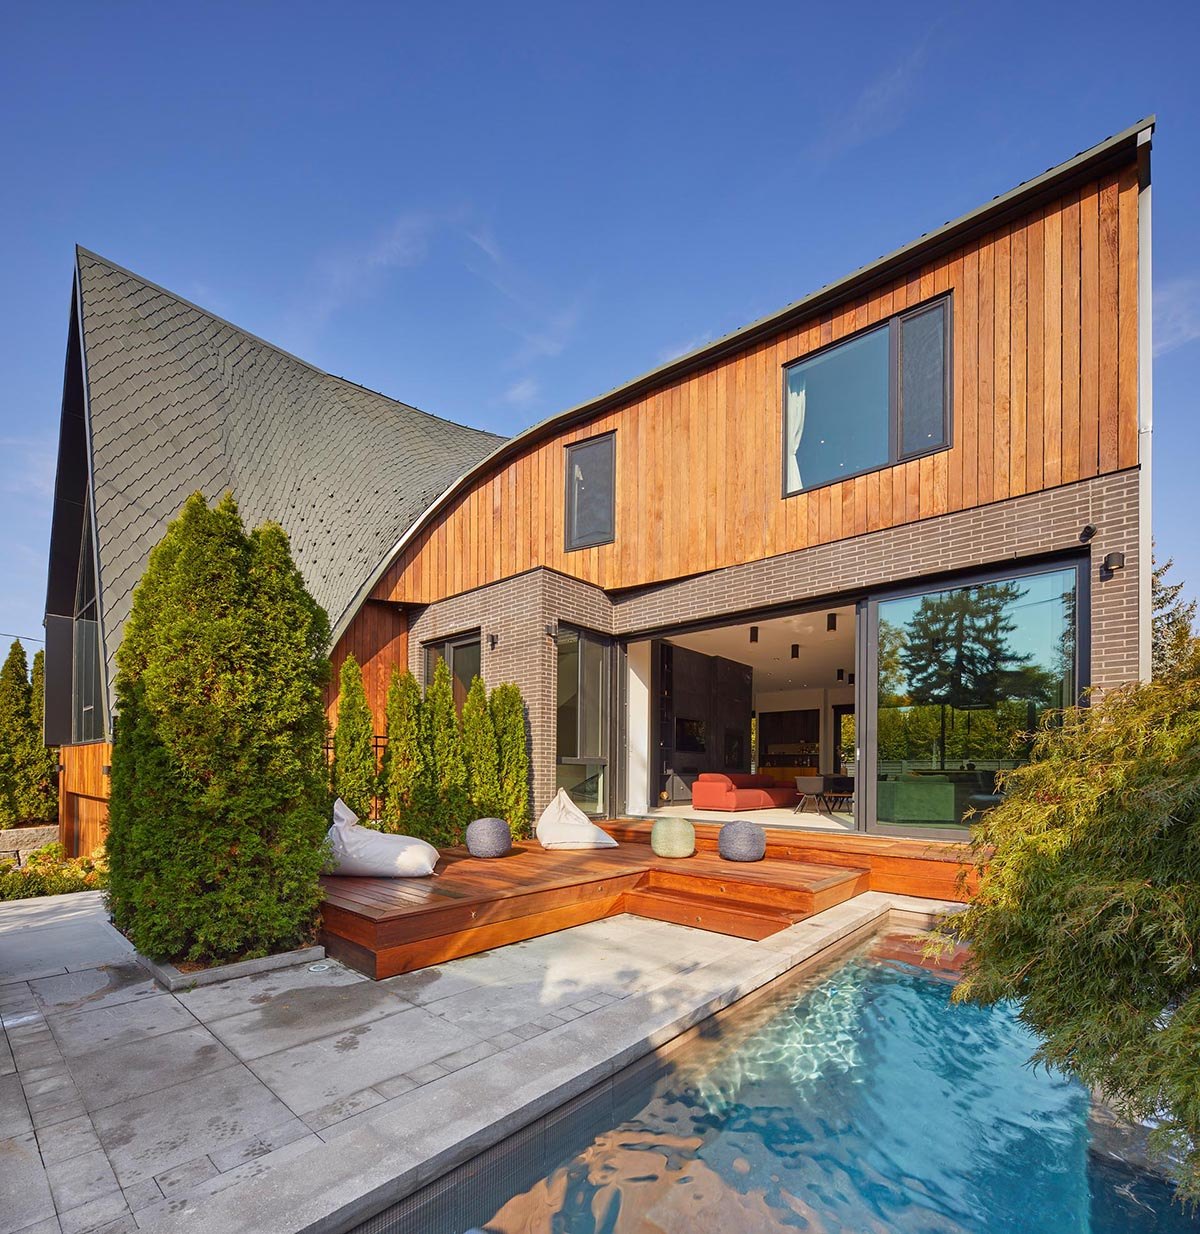 A modern home with a curved roof has a small front courtyard with a swimming pool and sun deck.